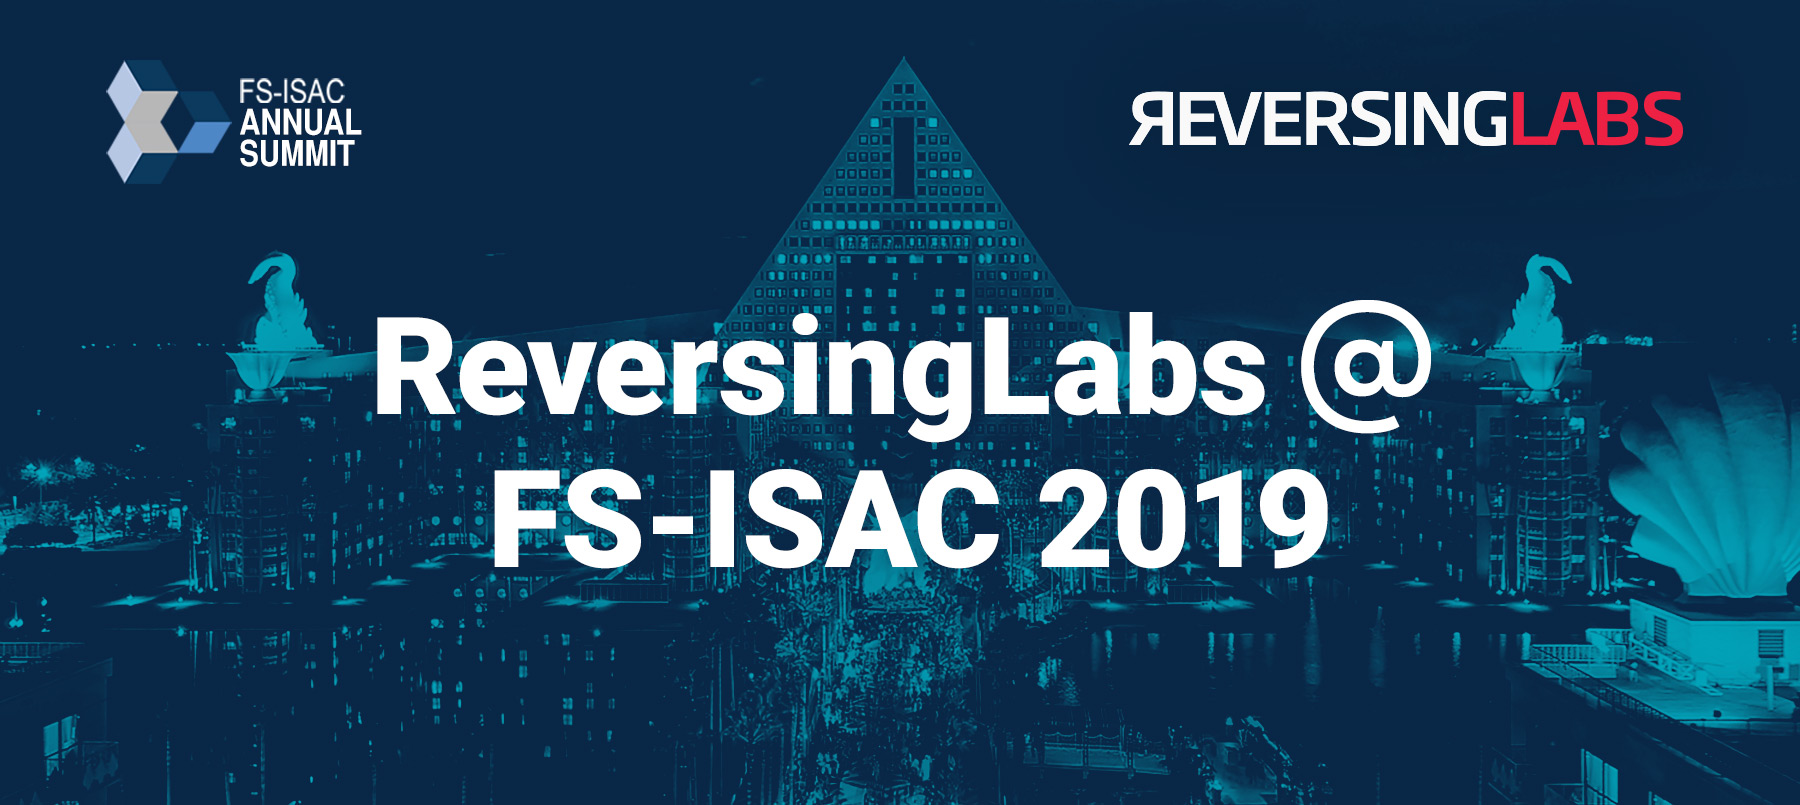 ReversingLabs Special Sponsor at FS-ISAC Annual Summit 2019